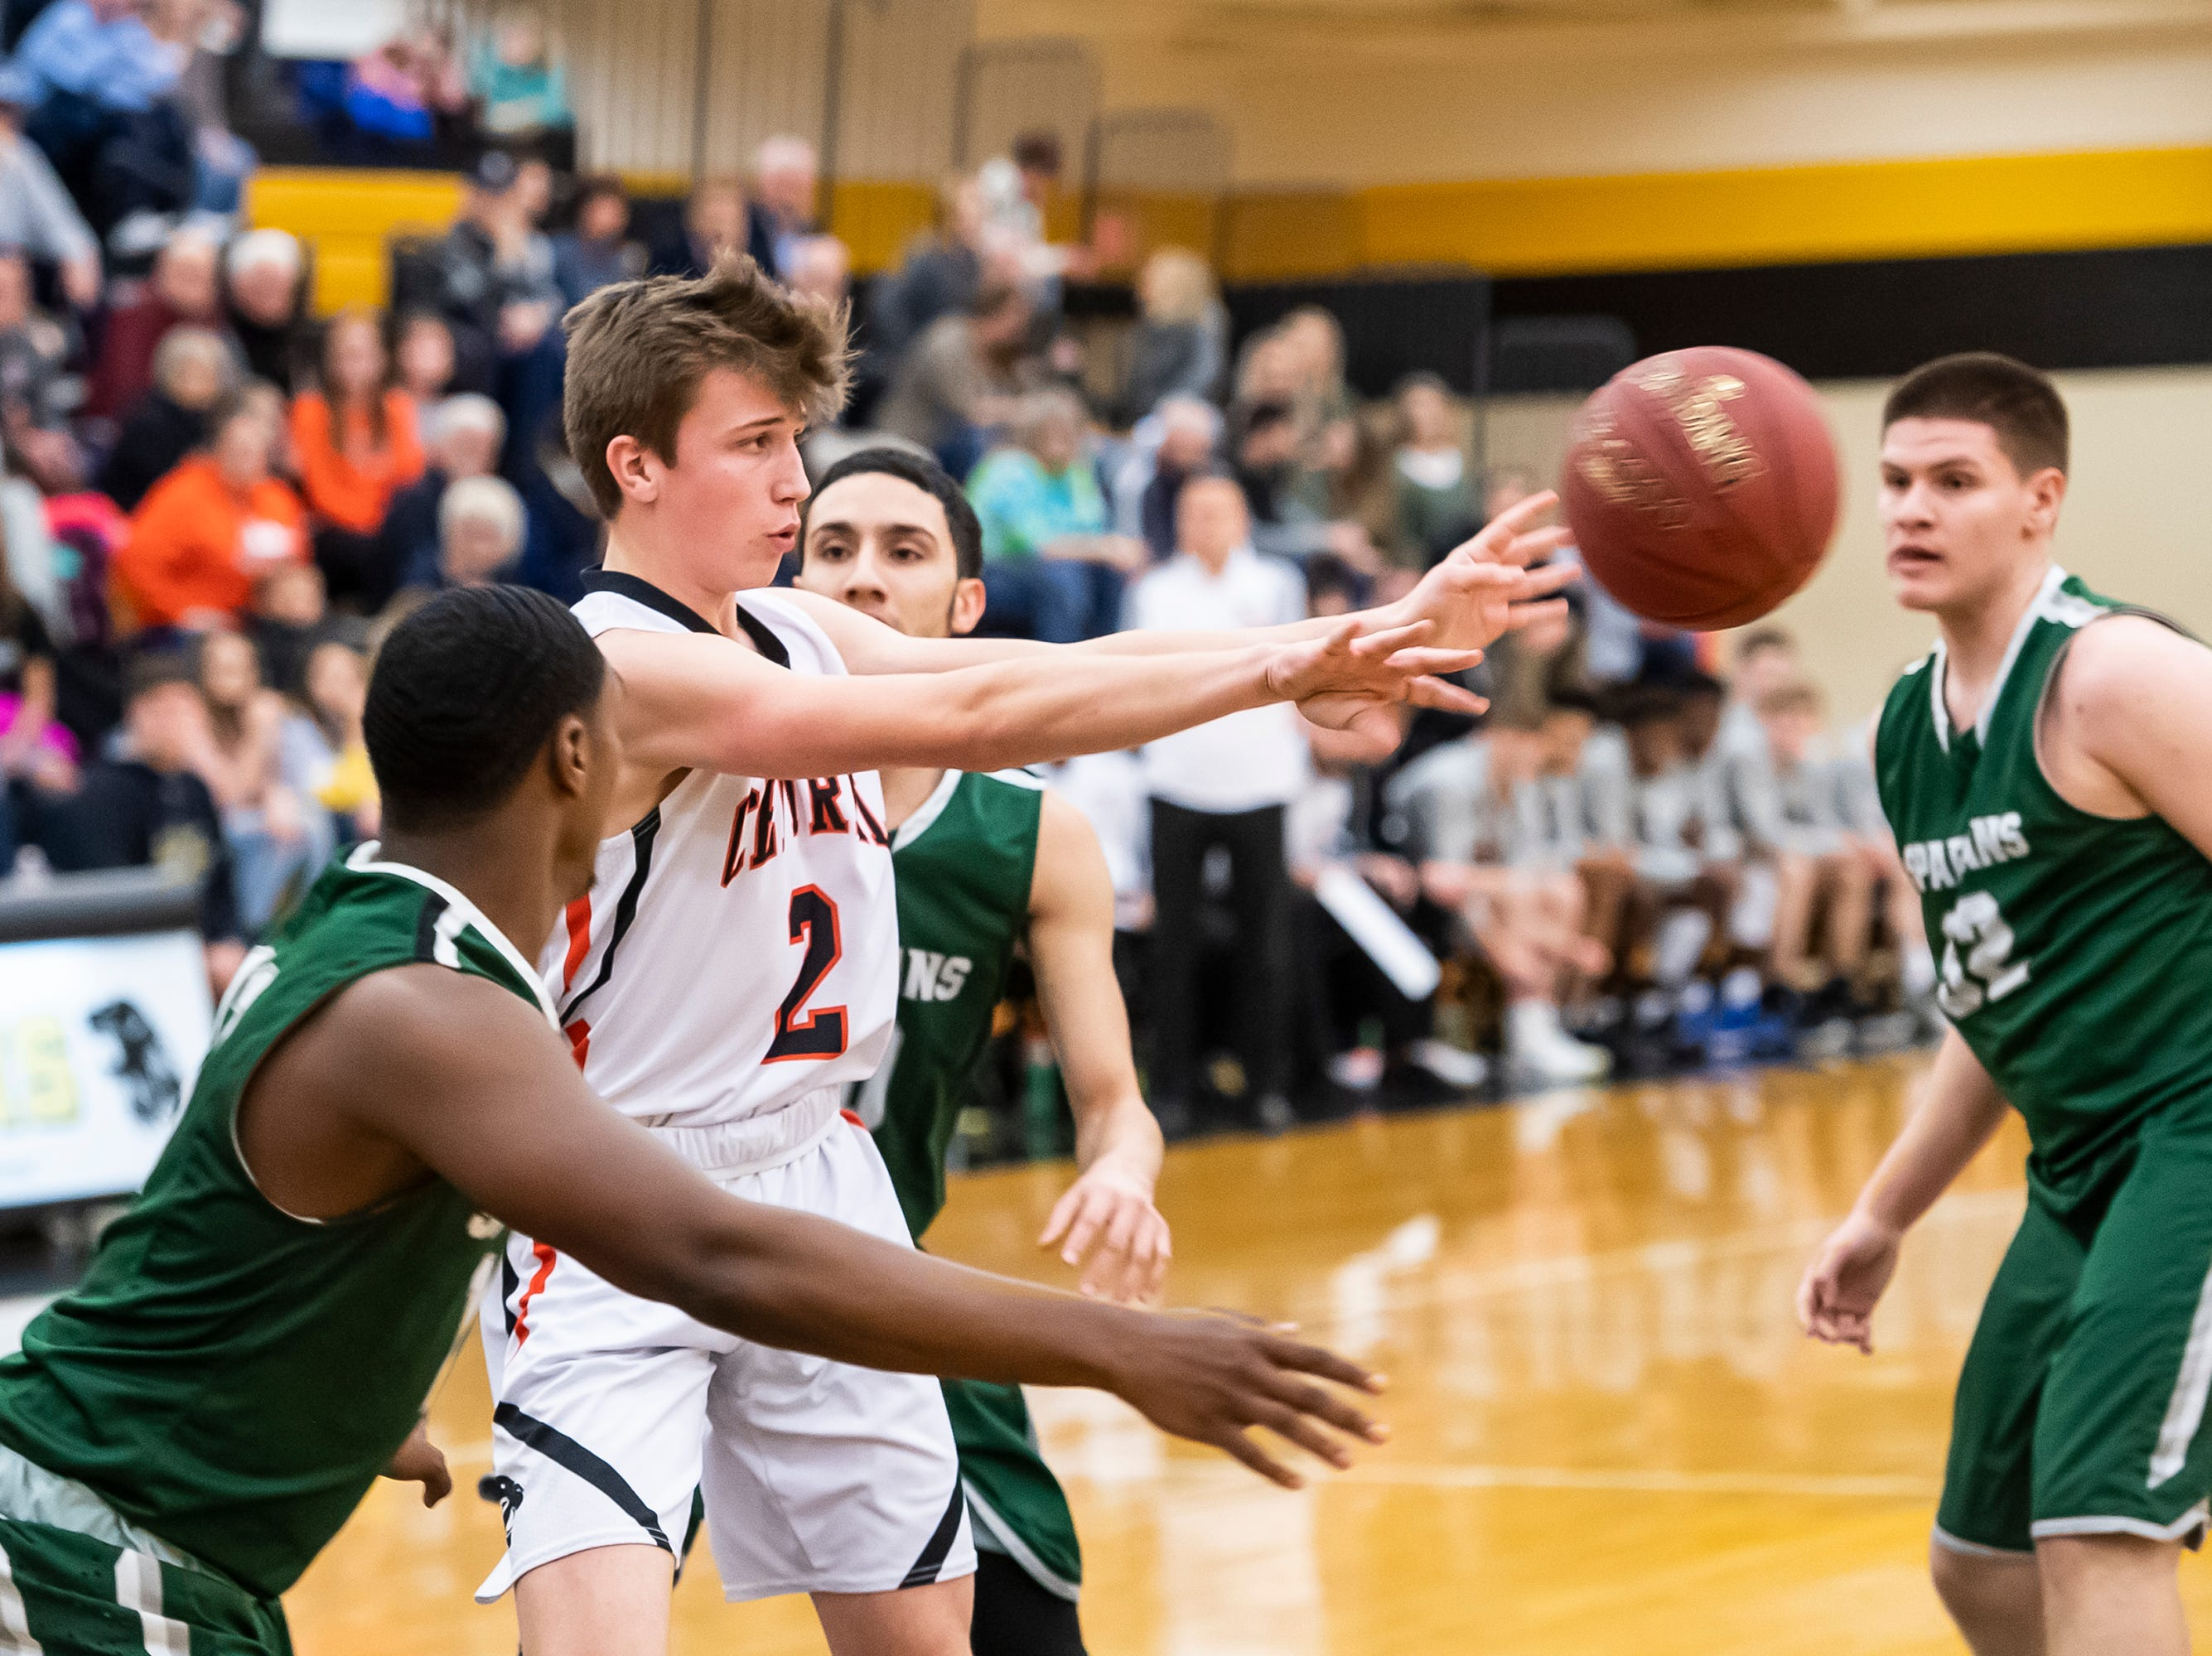 Central York's Alex Salter passes the ball during during play against York County Tech in a YAIAA quarterfinal game at Red Lion High School Saturday, February 9, 2019. The Panthers won 74-43.